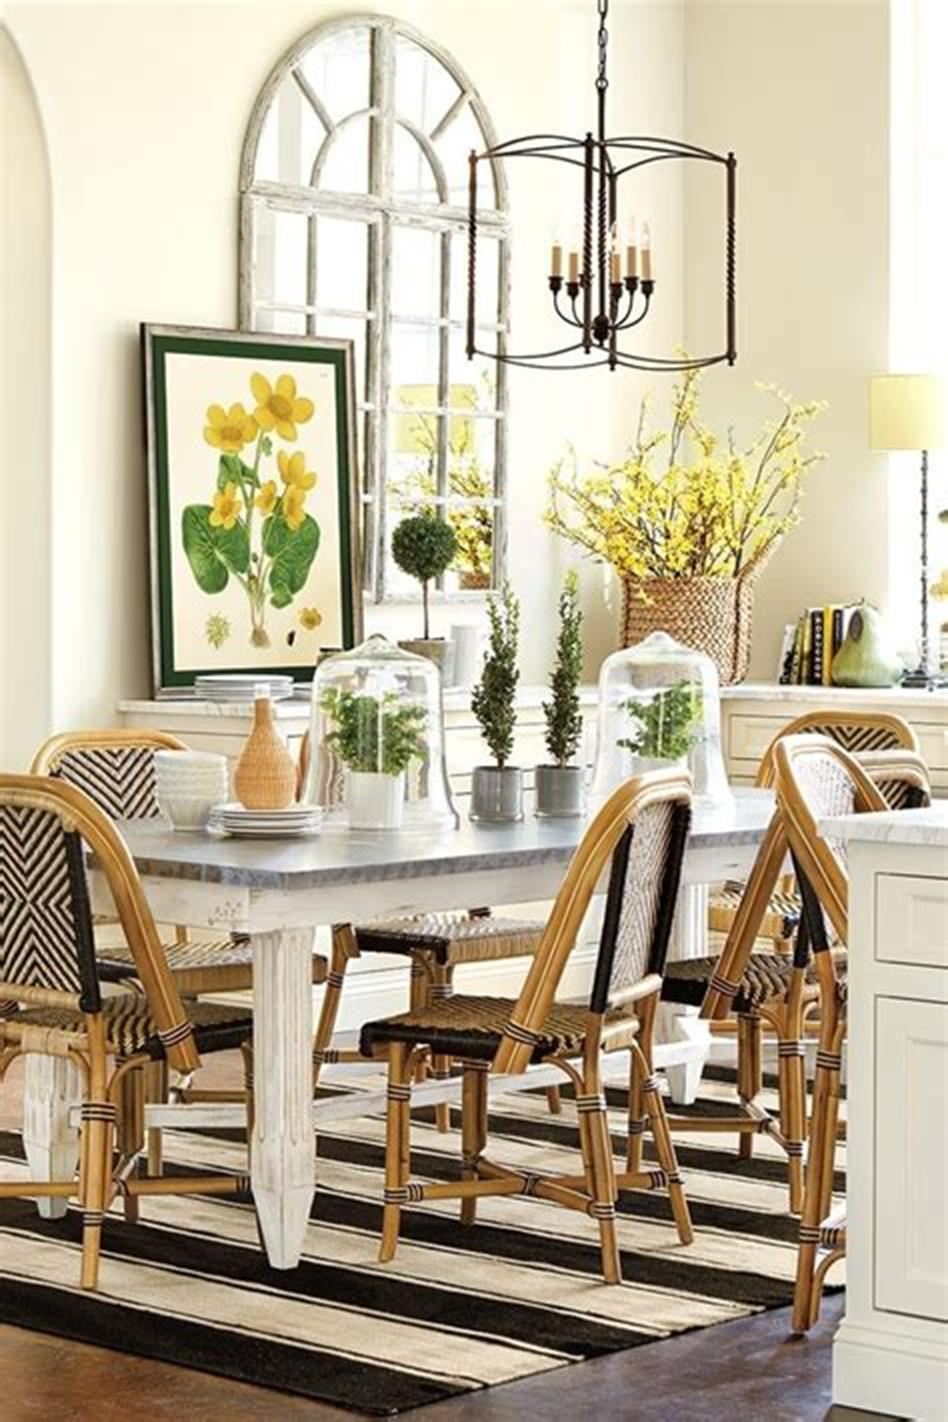 35 Stunning Spring Kitchen and Dining Room Decorating Ideas 2019 32